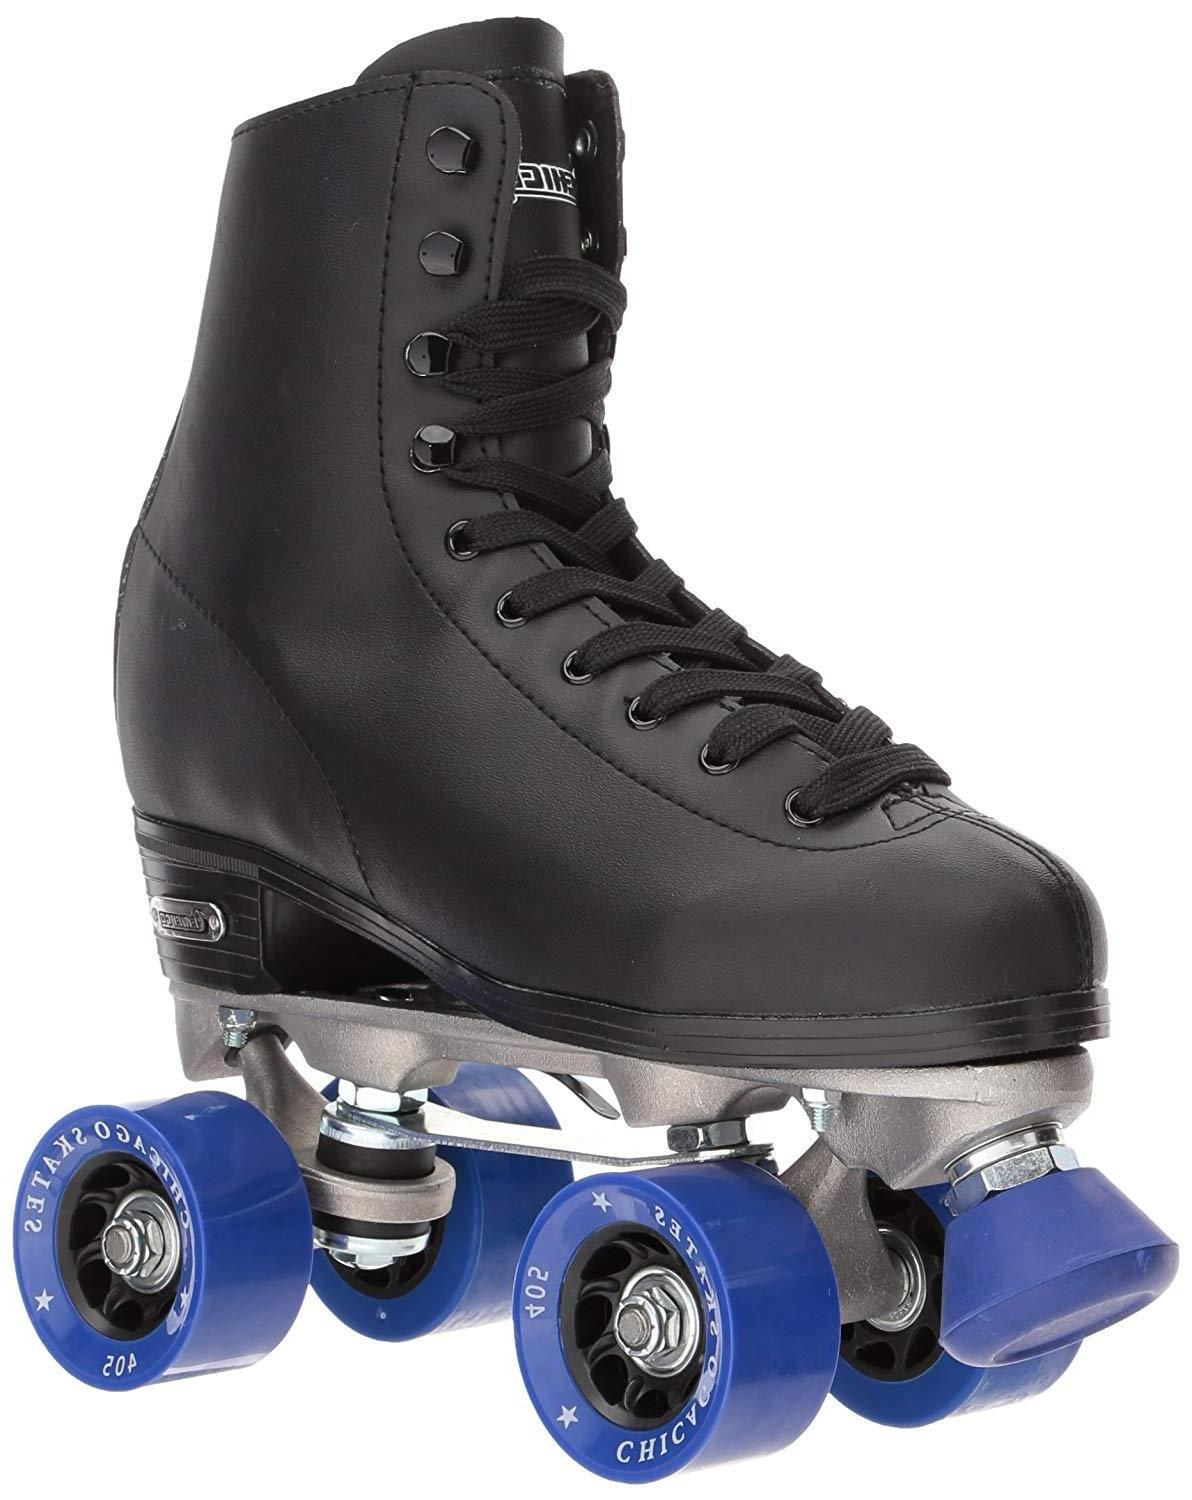 Chicago Men's Roller Skates Size 1